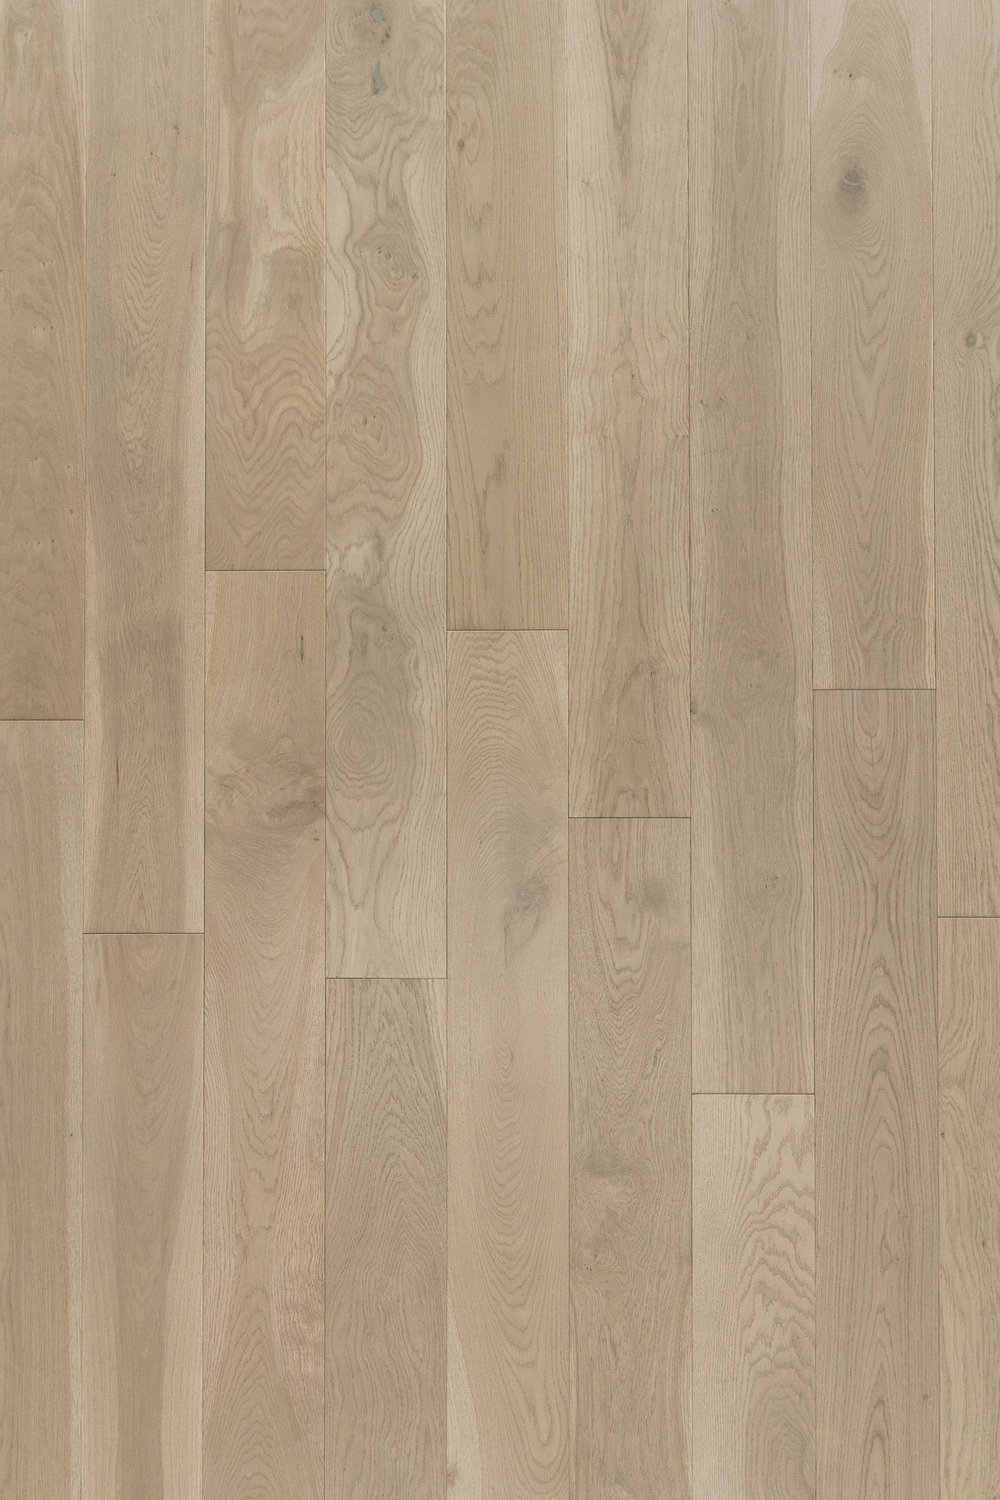 BSWO-22 | Gris Chaud | White Oak